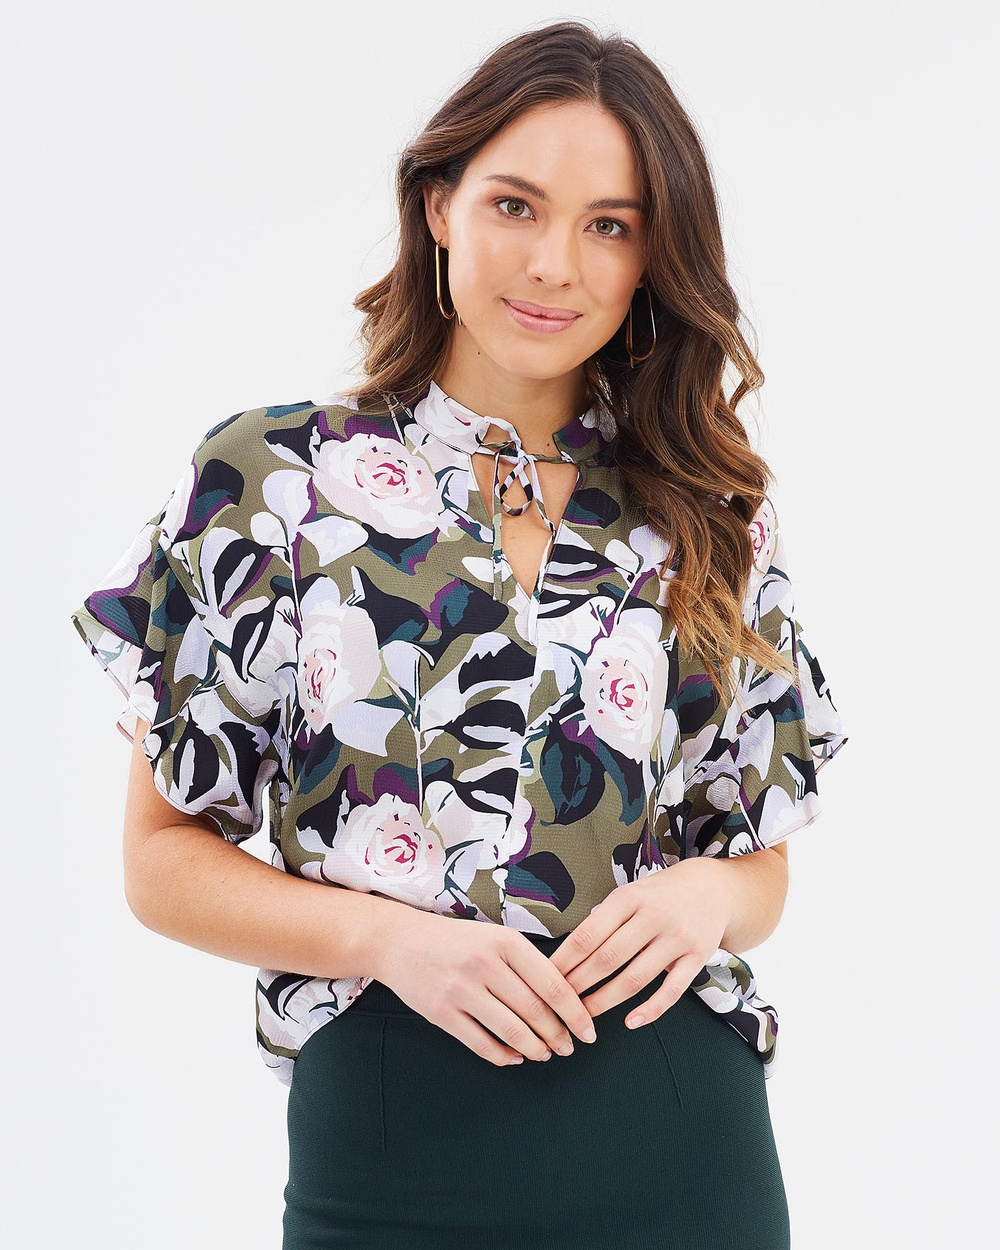 SABA Sophia Floral Top Tops Multi Sophia Floral Top